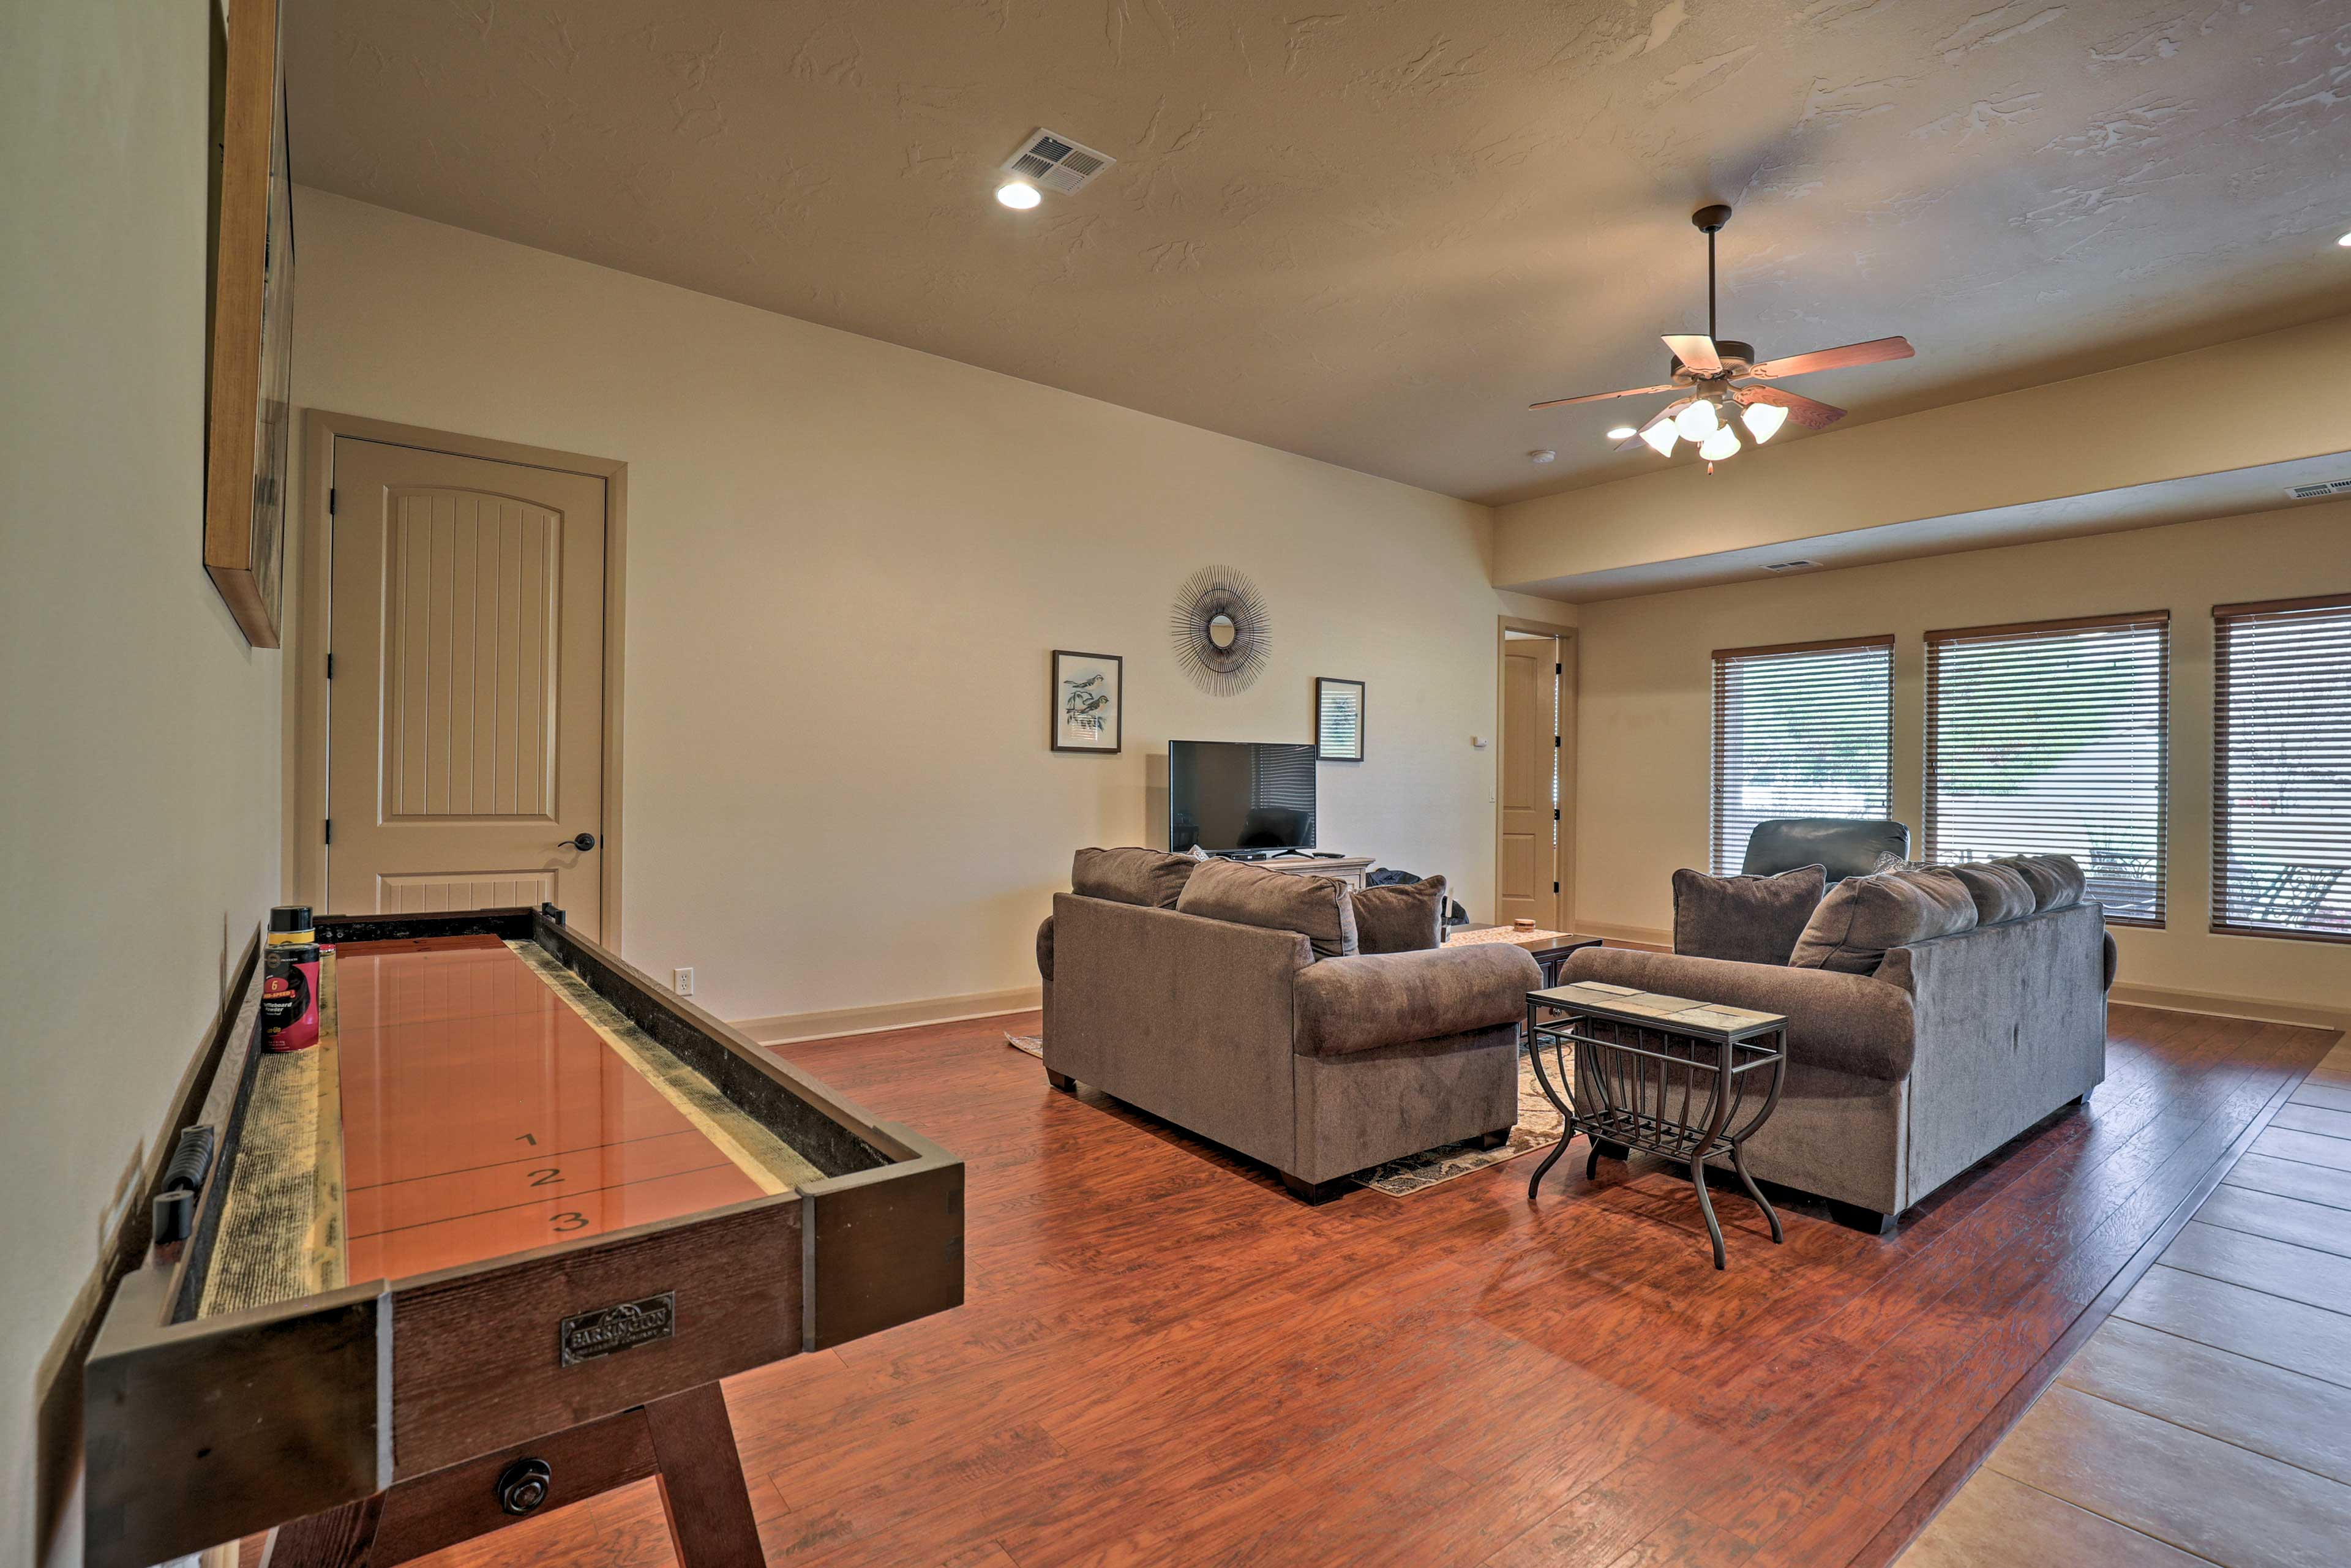 Play a game of shuffleboard in the living room!